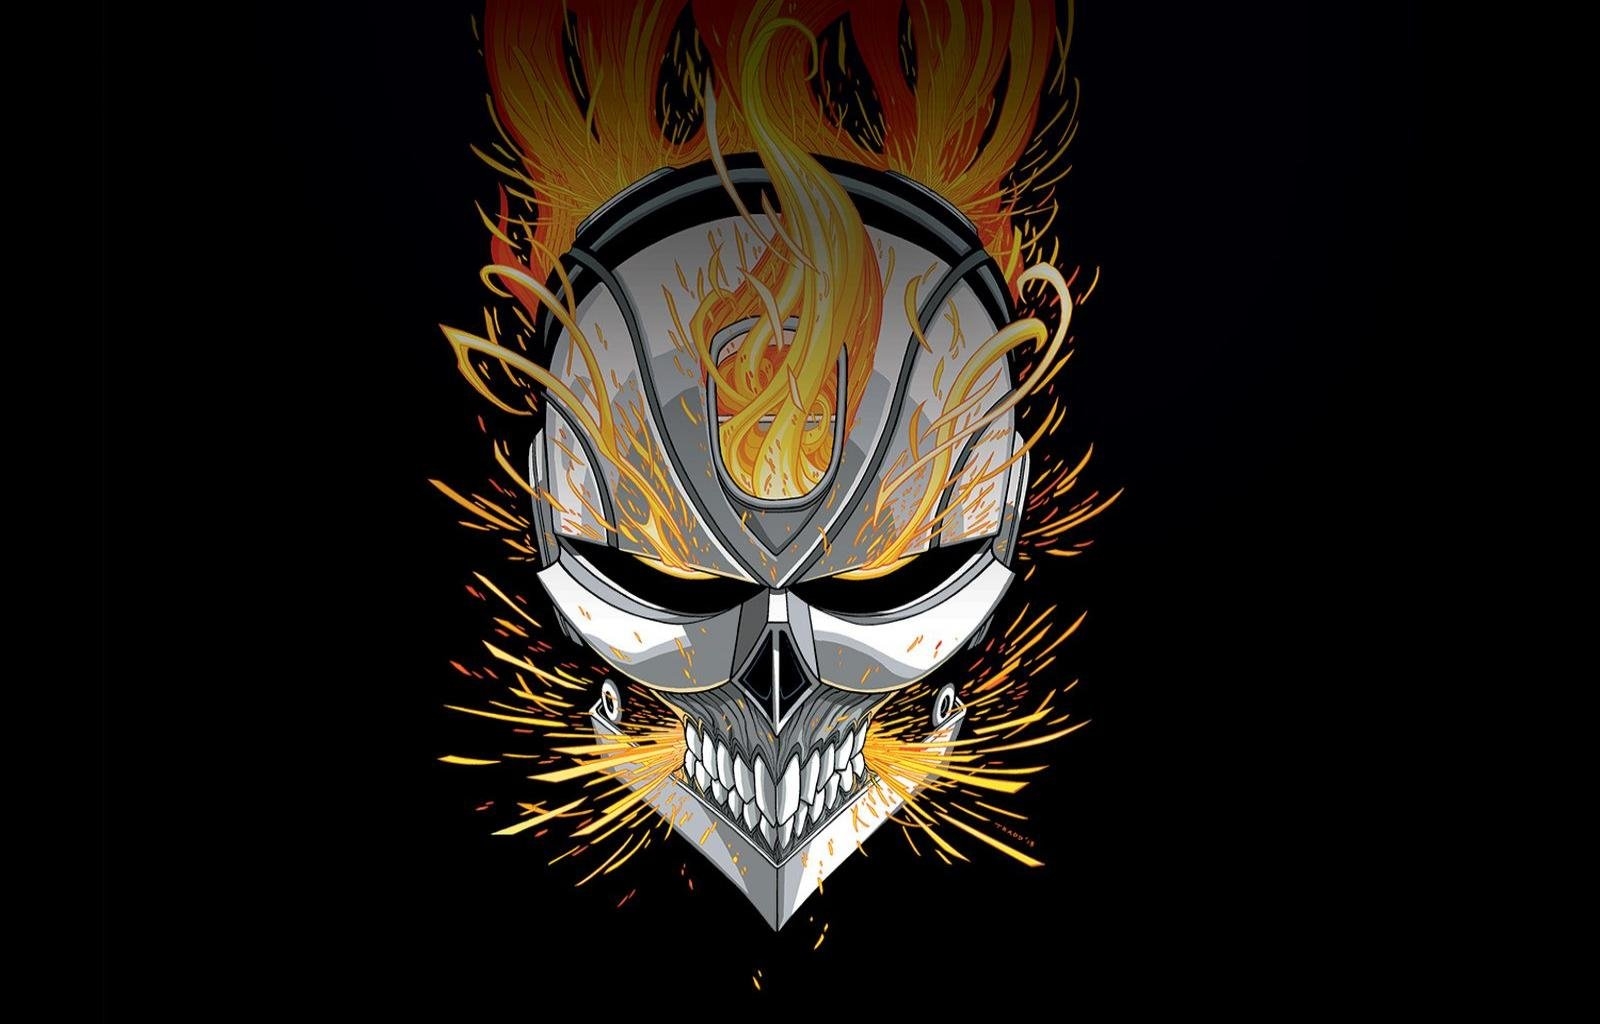 High resolution Ghost Rider hd 1600x1024 background ID:29477 for desktop